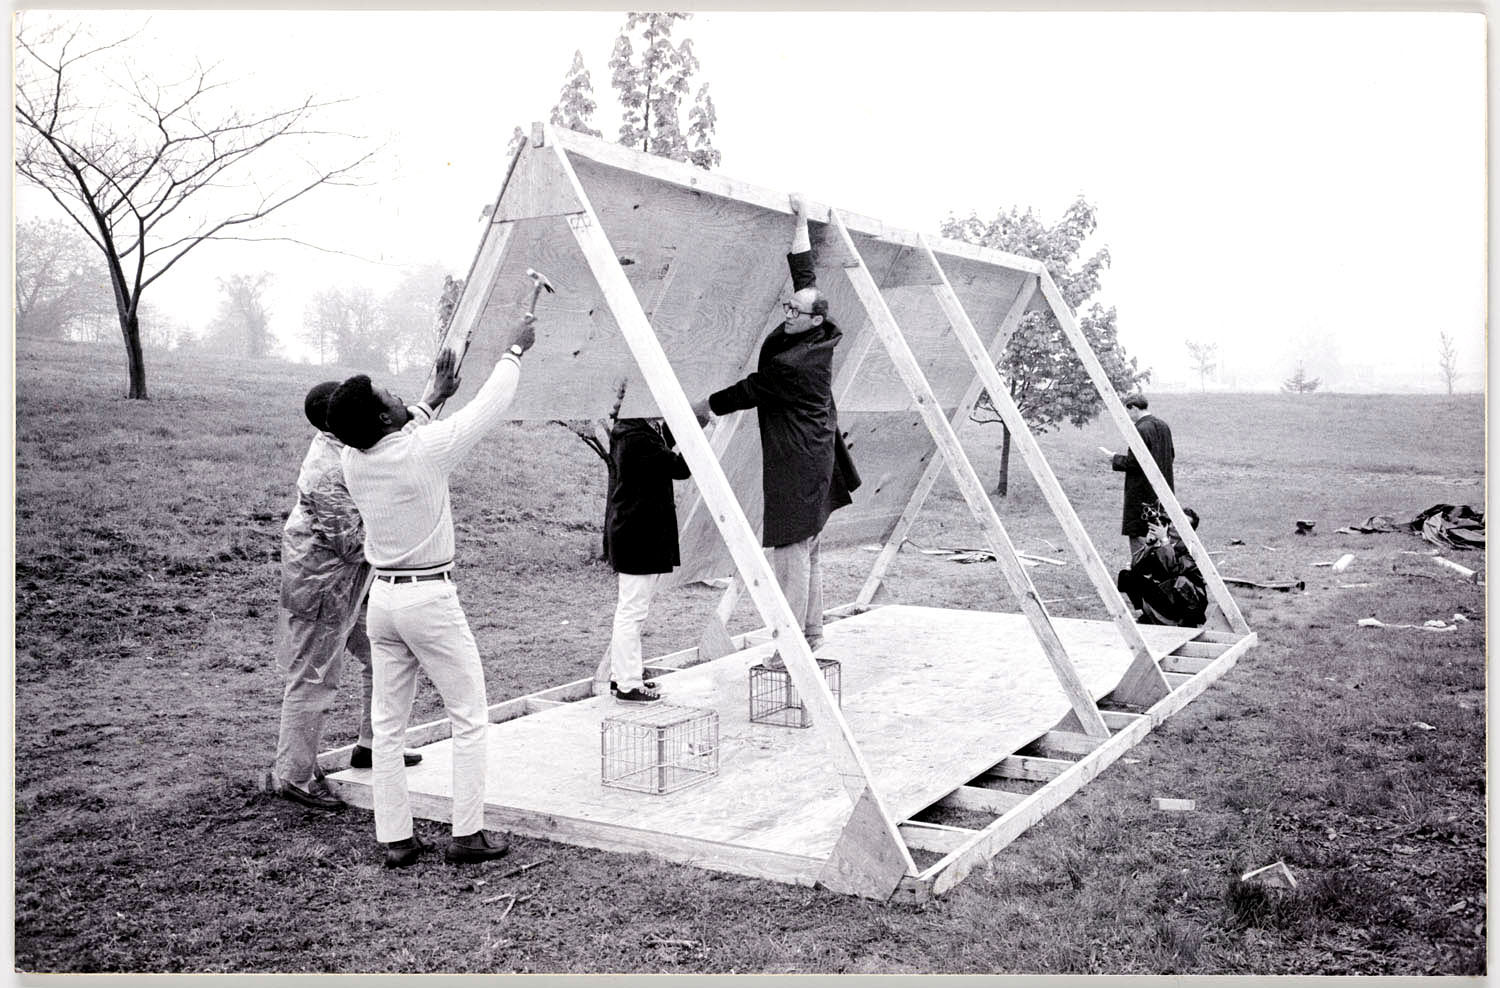 John Wiebenson, a local architect, and others build a structure to use during the 1968 Poor People's Campaign on the National Mall in Washington, D.C. MUST CREDIT: Leah L. Jones, Smithsonian's National Museum of African American History and Culture